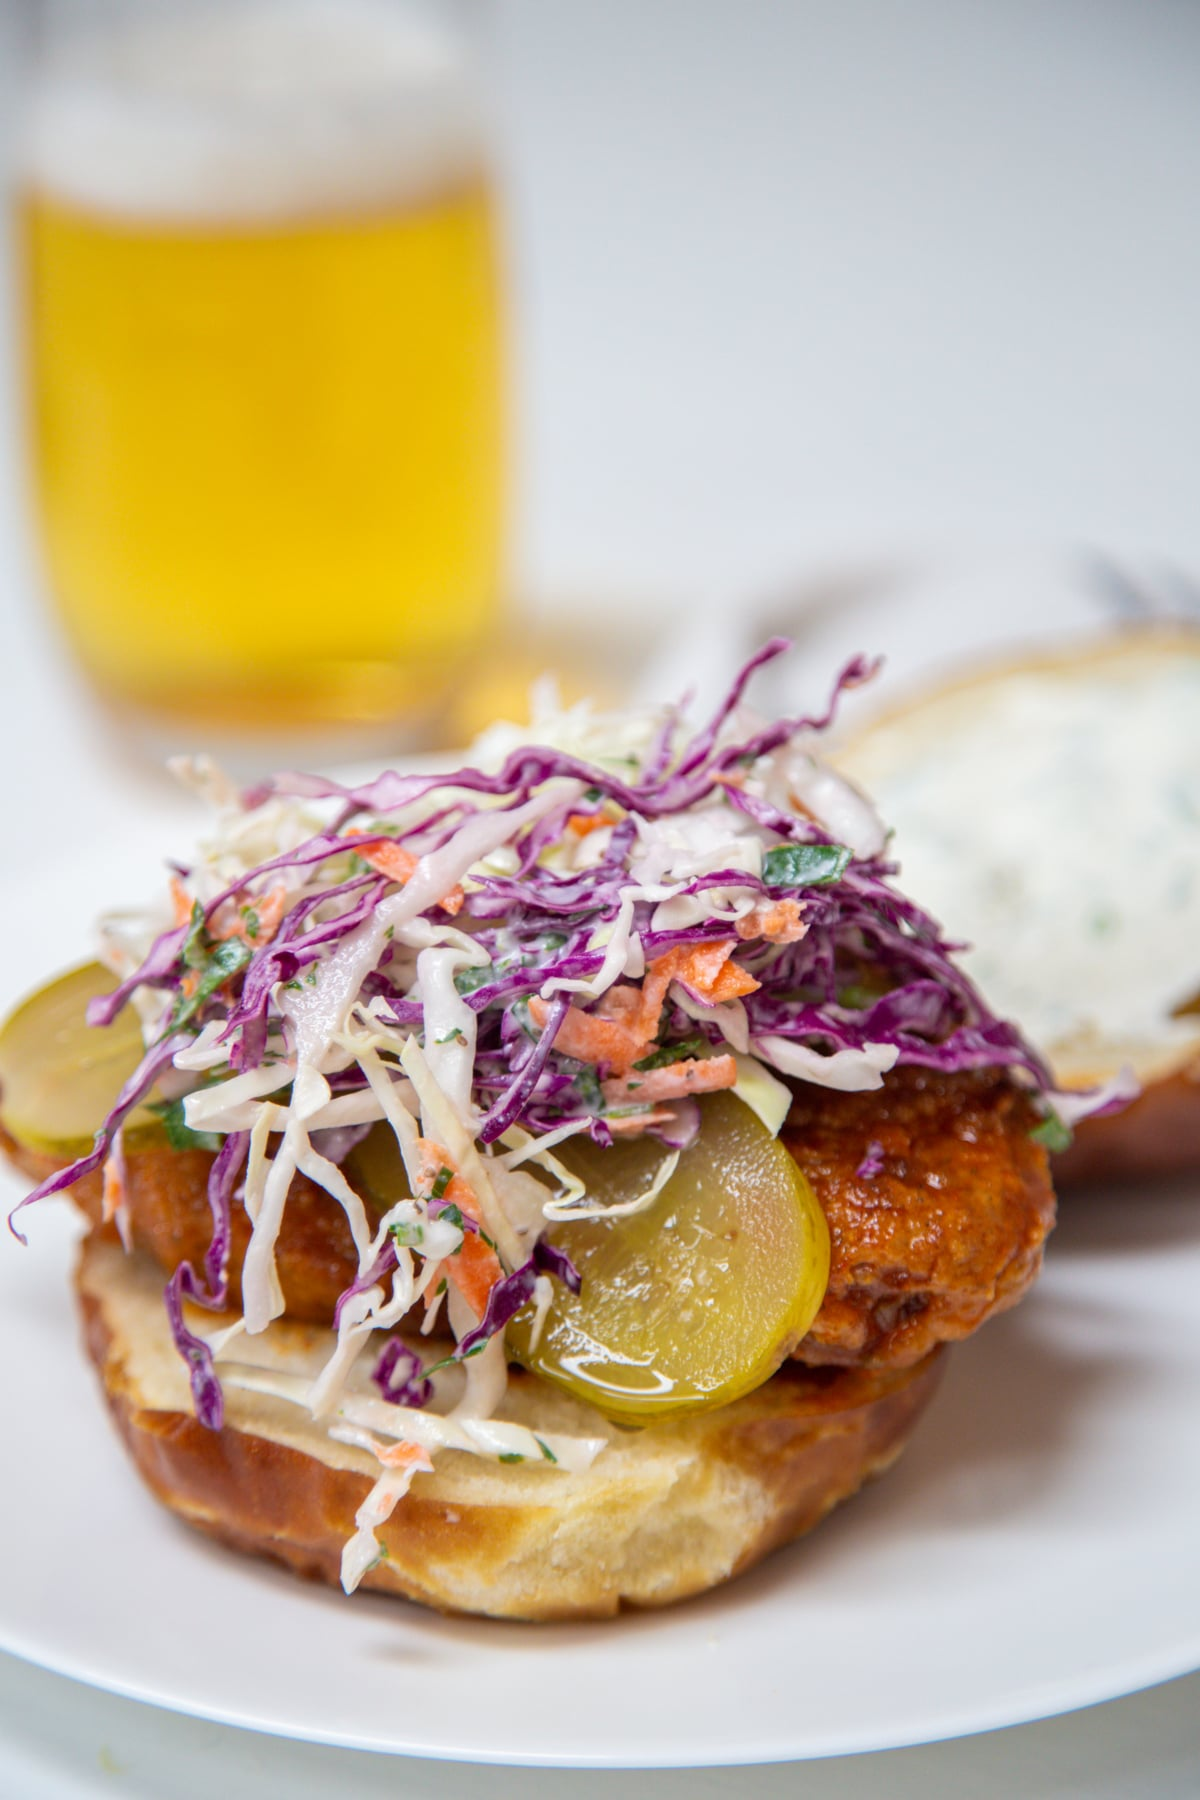 A fried chicken sandwich with pickles and creamy coleslaw on top of it and a glass of beer in the background.